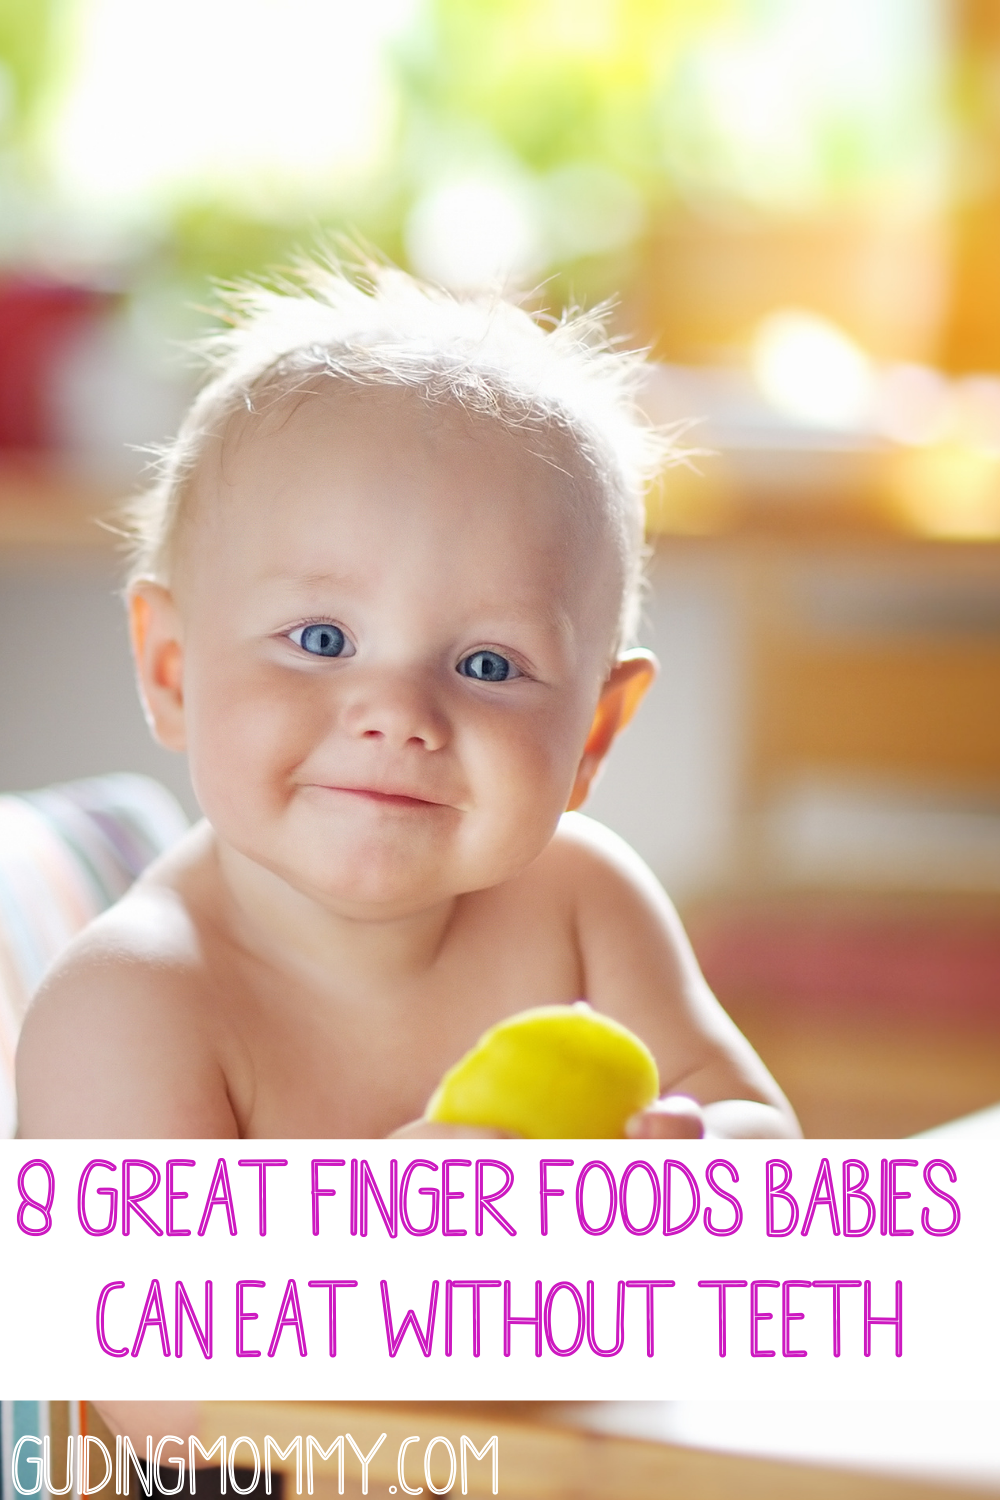 8 Great Finger Foods Babies Can Eat Without Teeth